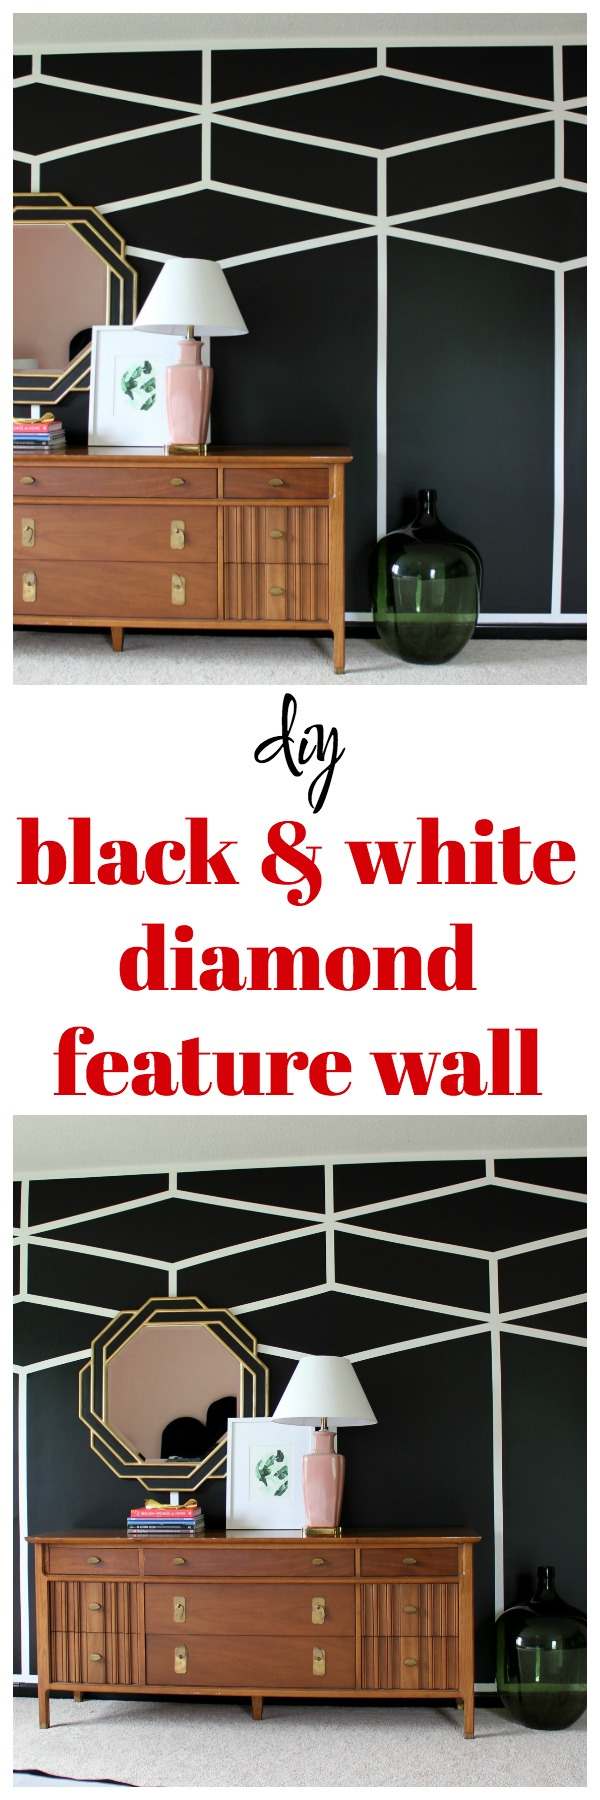 Black & White Diamond Feature Wall | DIY Accent Wall Designs | Feature Wall Ideas | Accent Wall Ideas | Accent Wall Bedroom